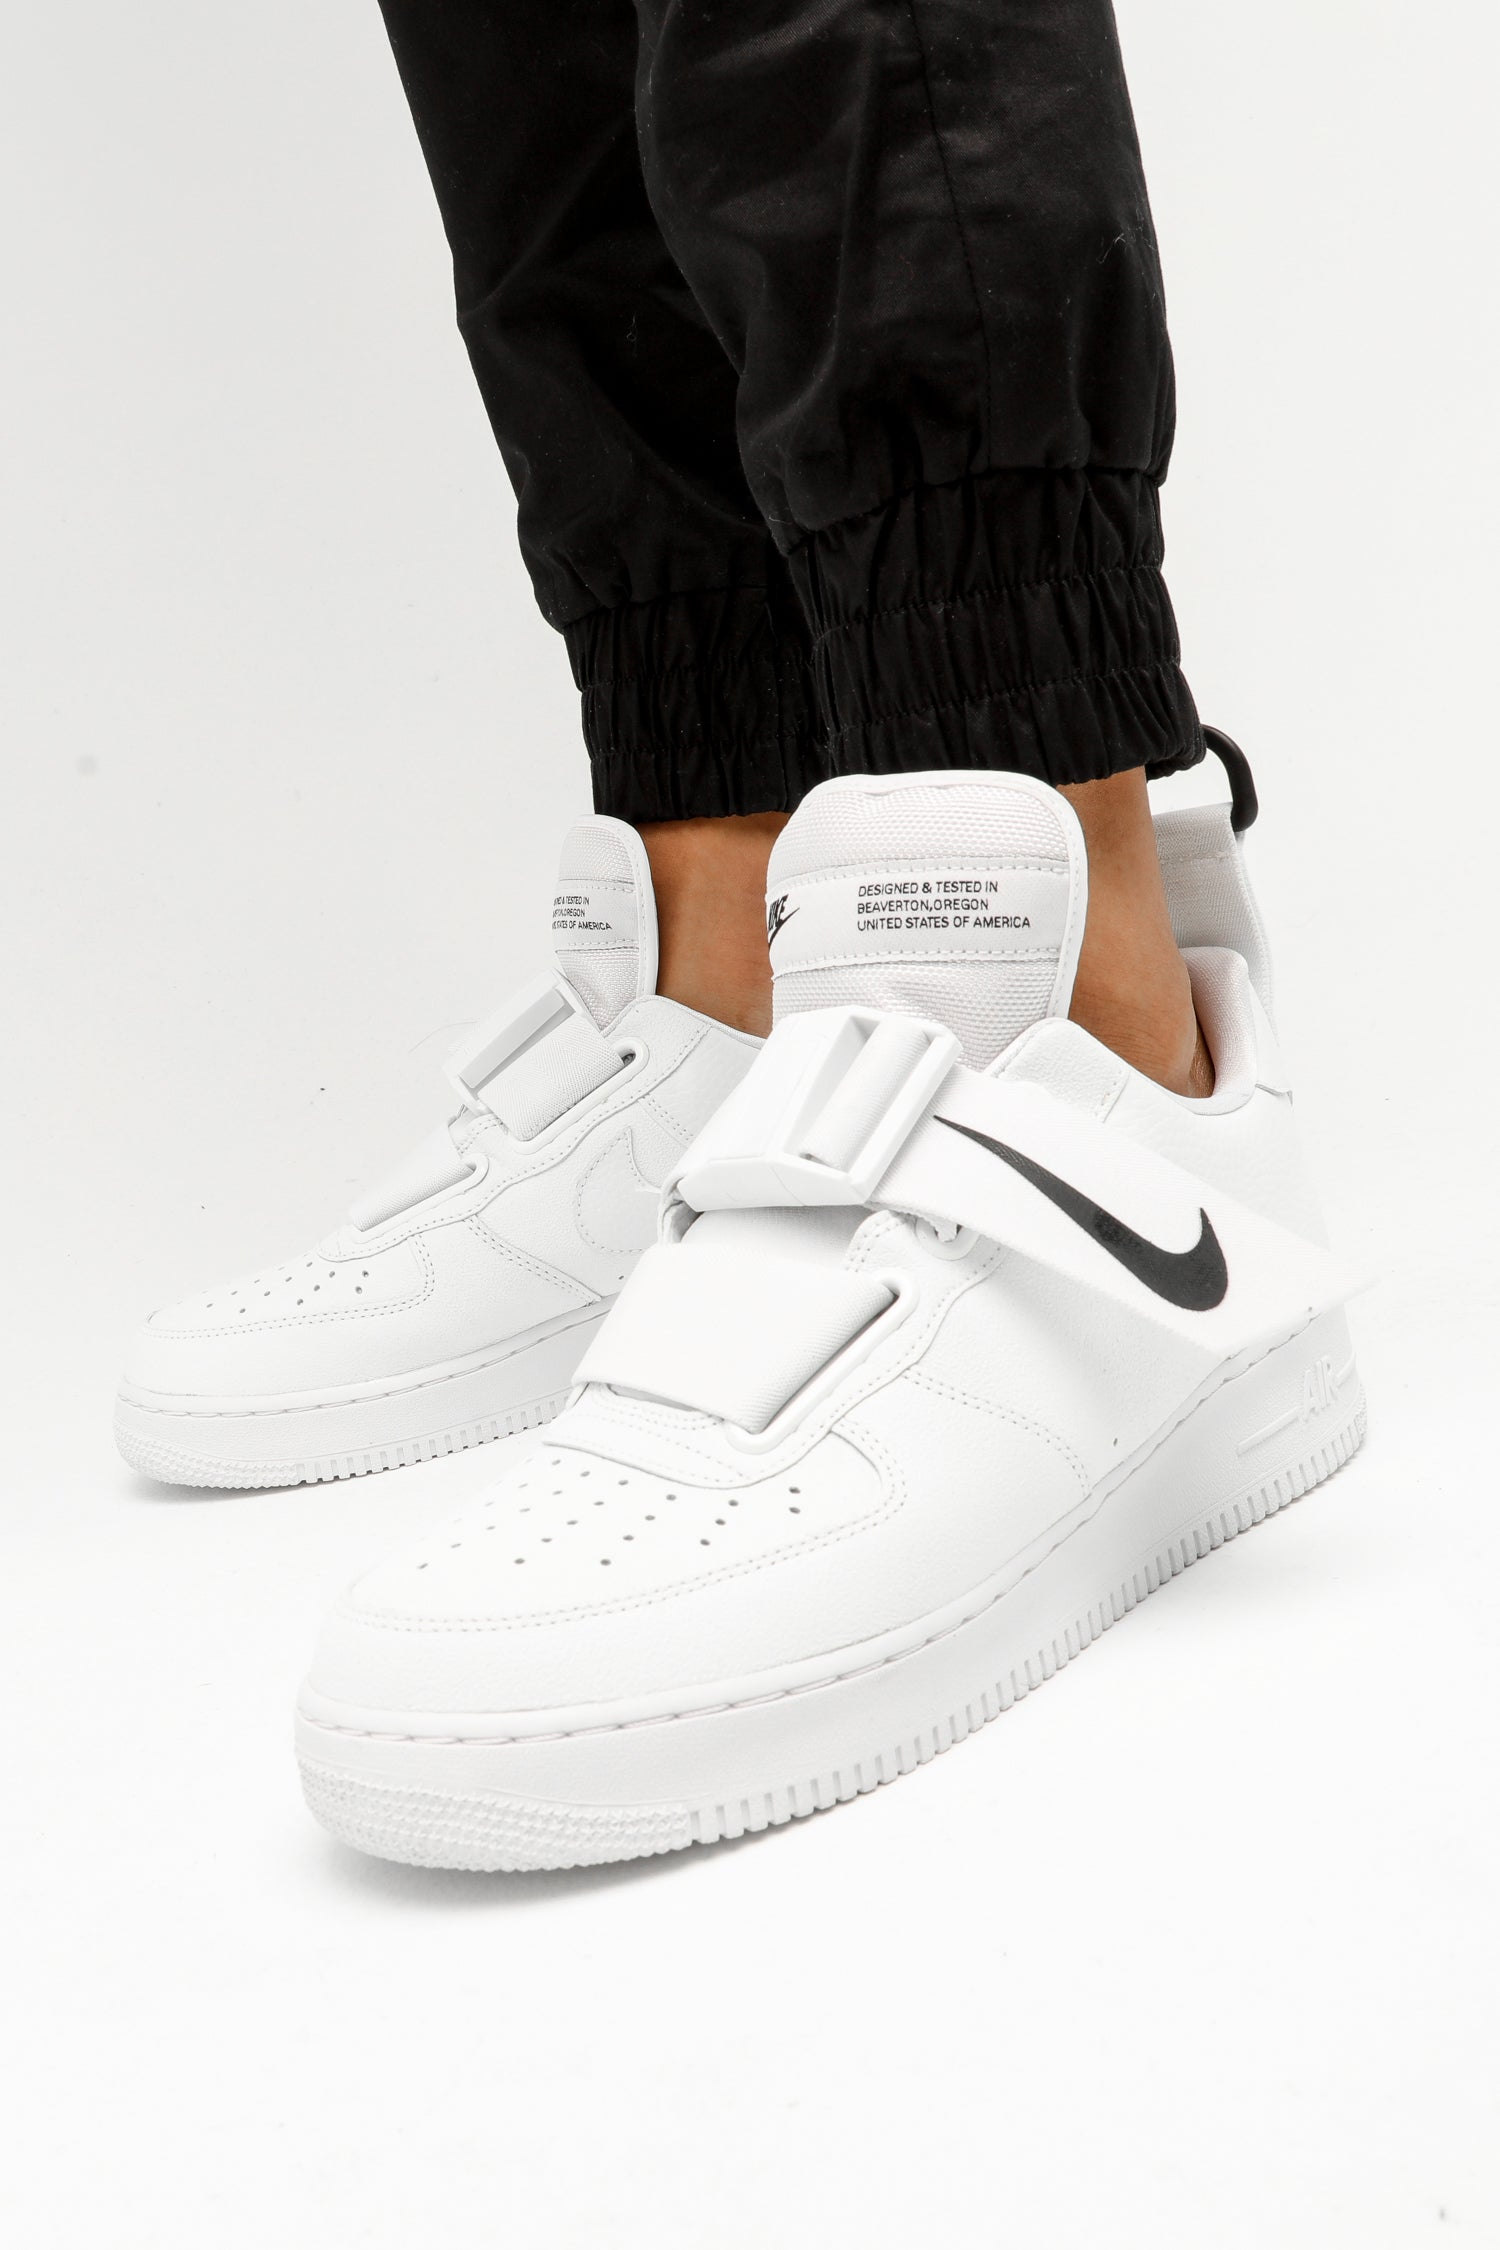 Nike Air Force 1 Mid Obsidian Grey (Size 9.5) DS — Roots